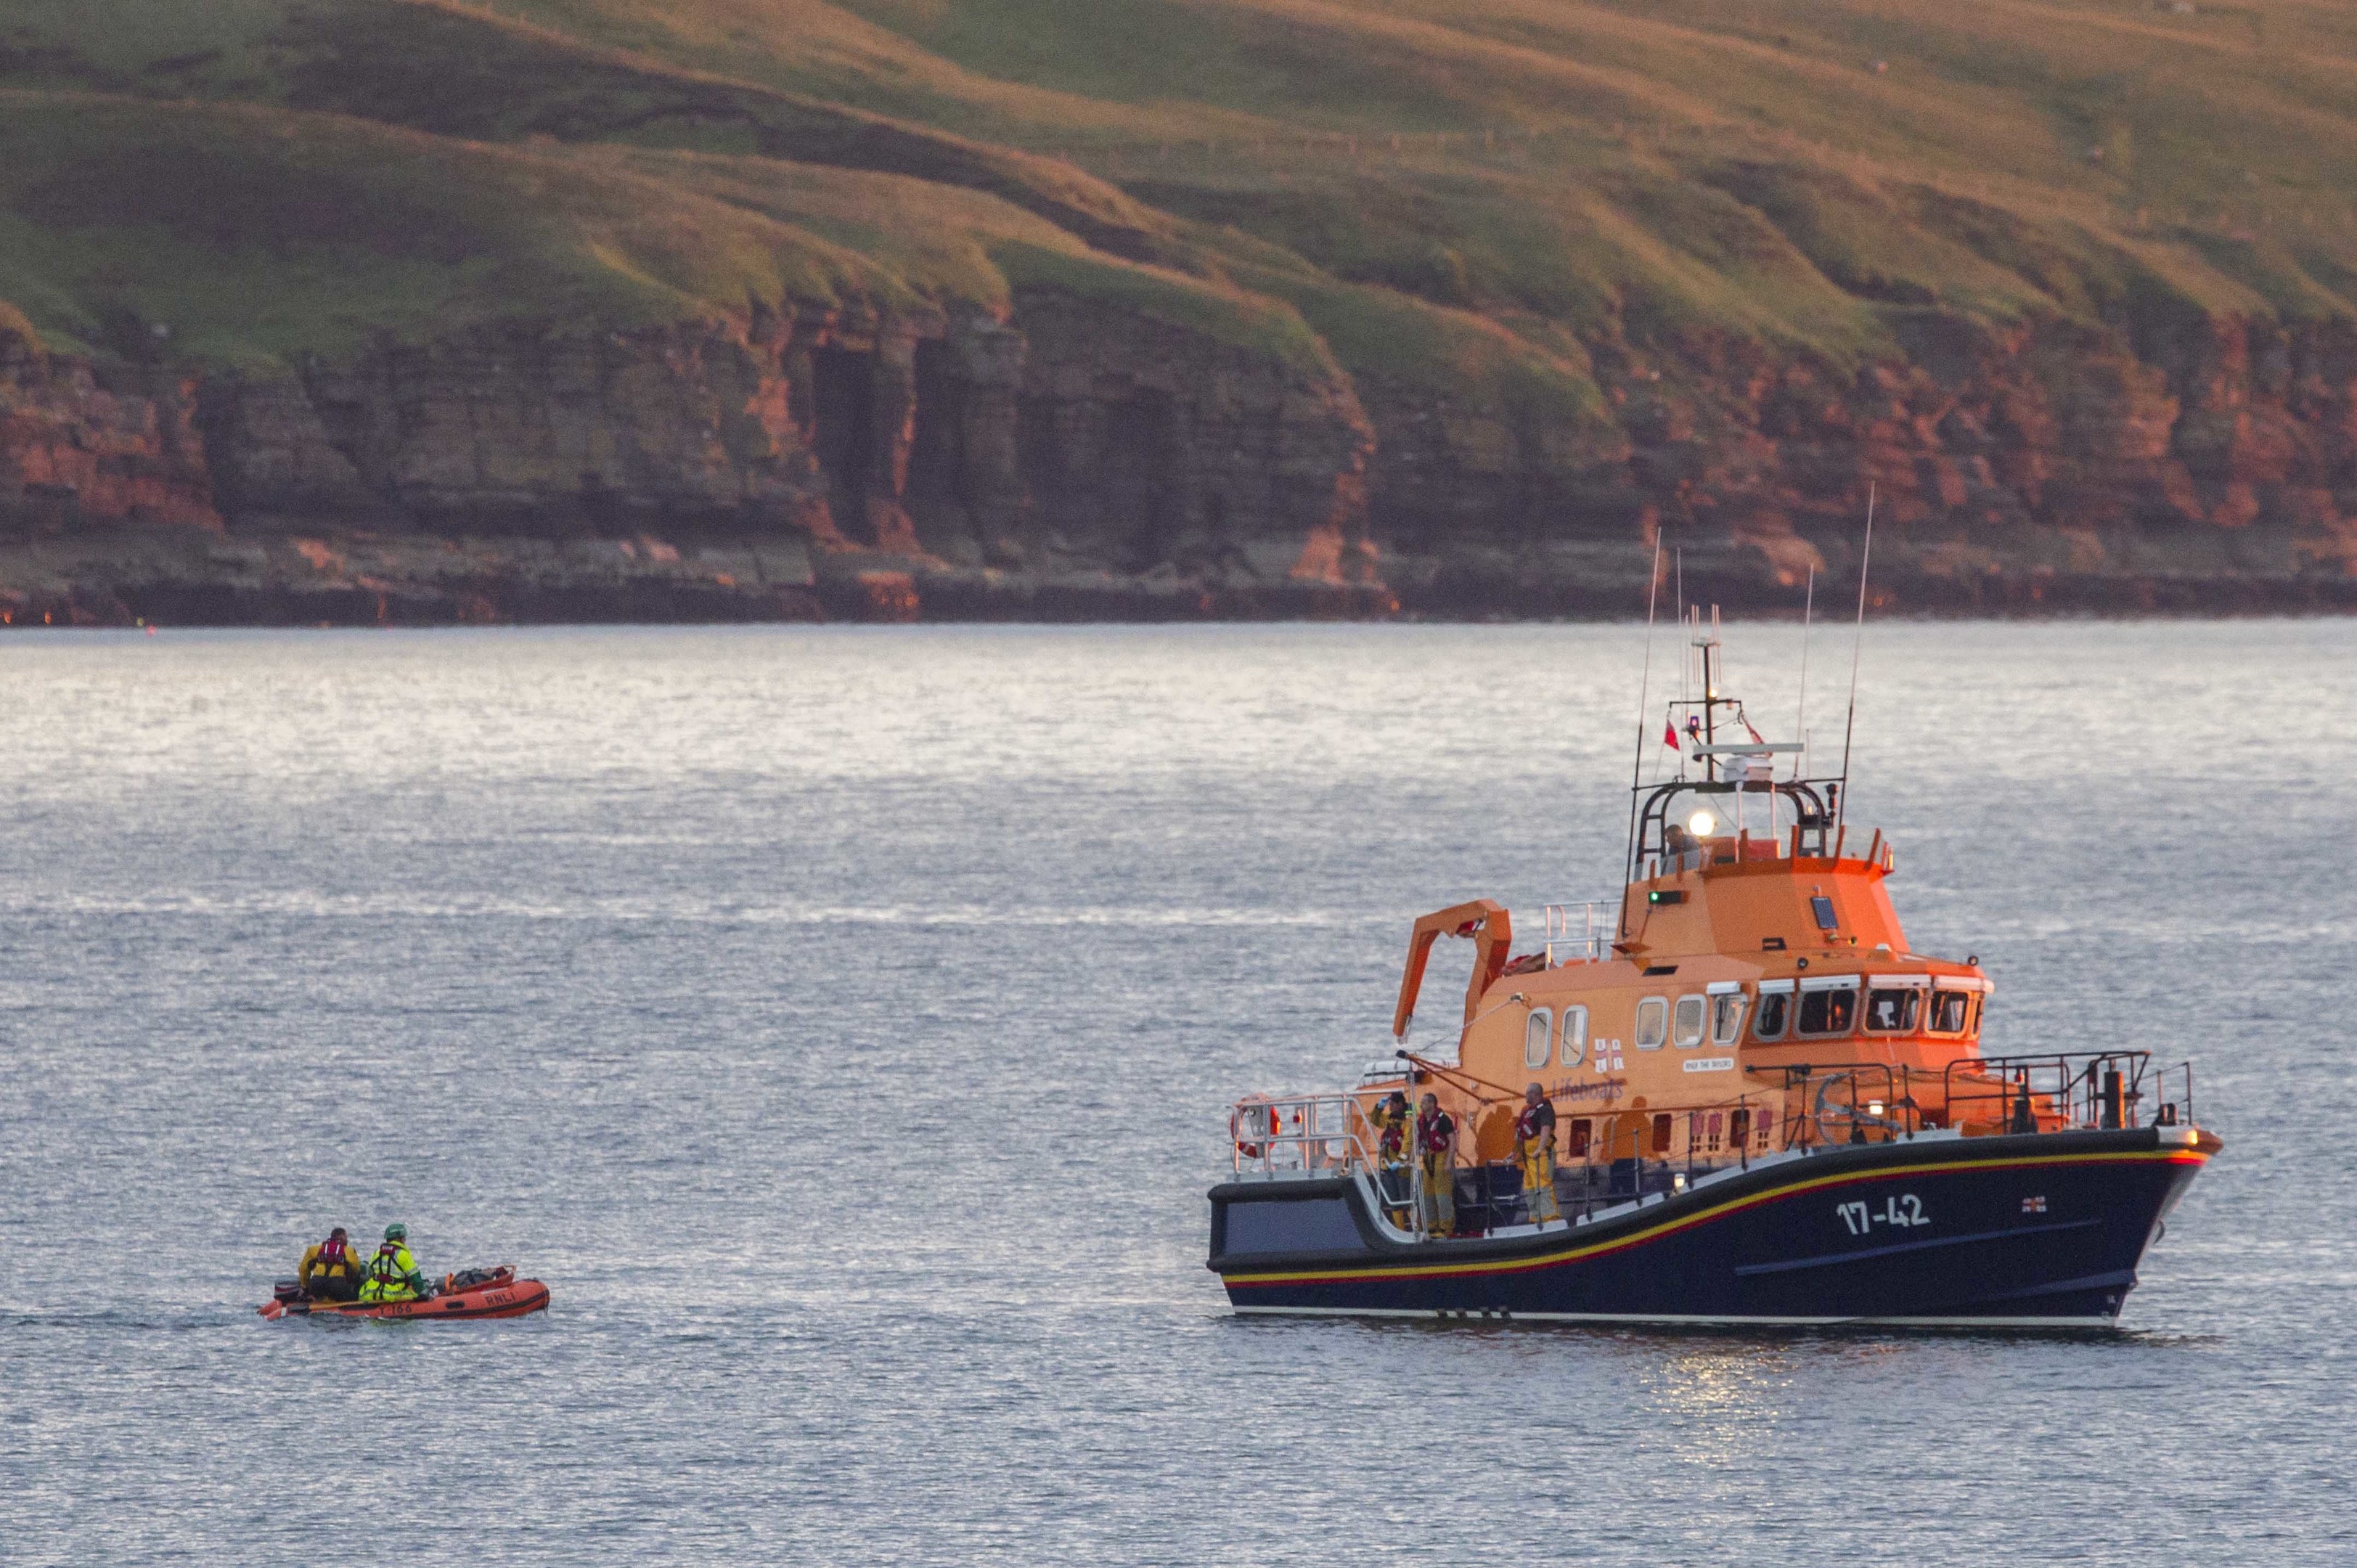 Lifeboat off Thurso